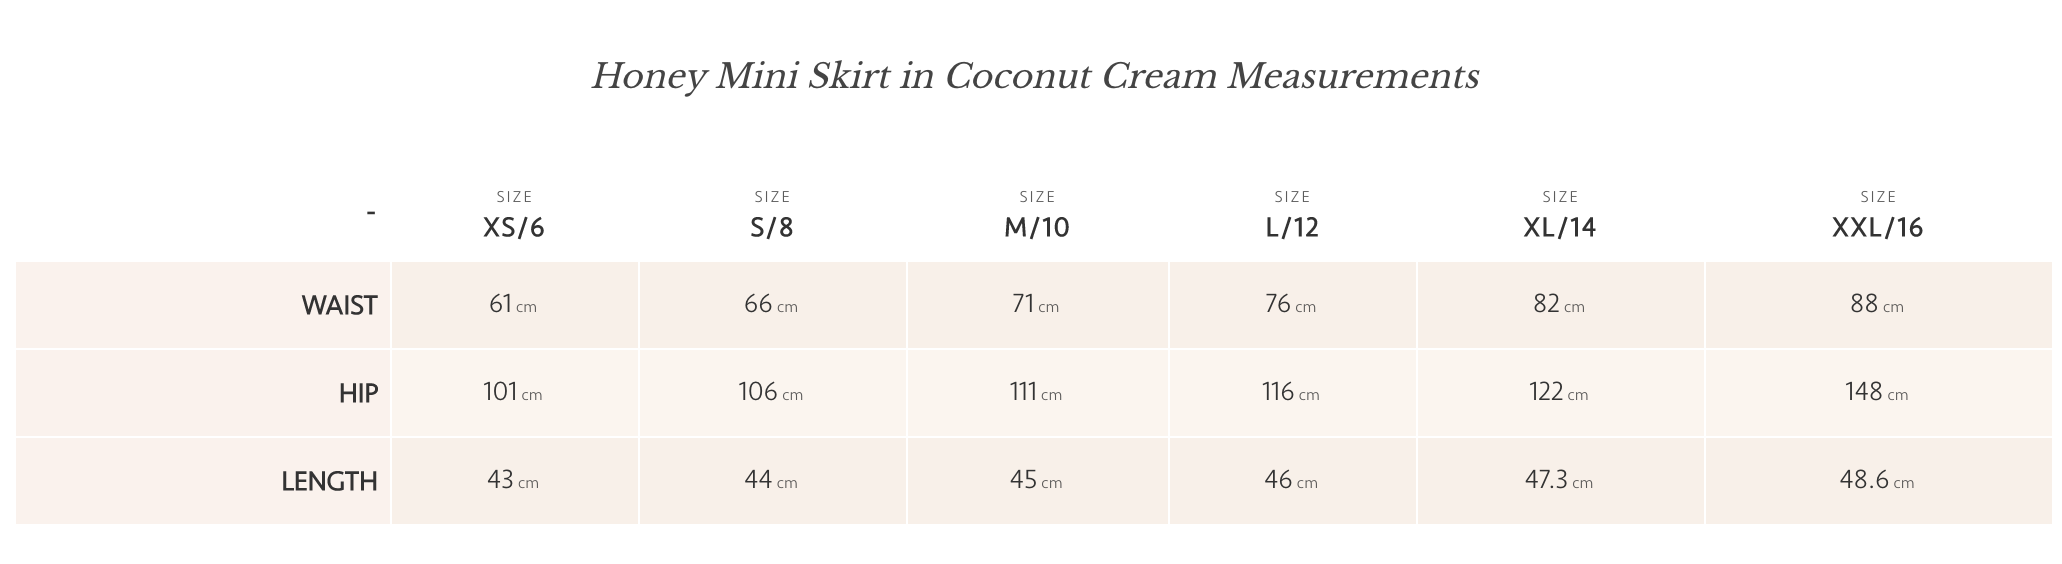 Coconut Cream Honey Mini Skirt